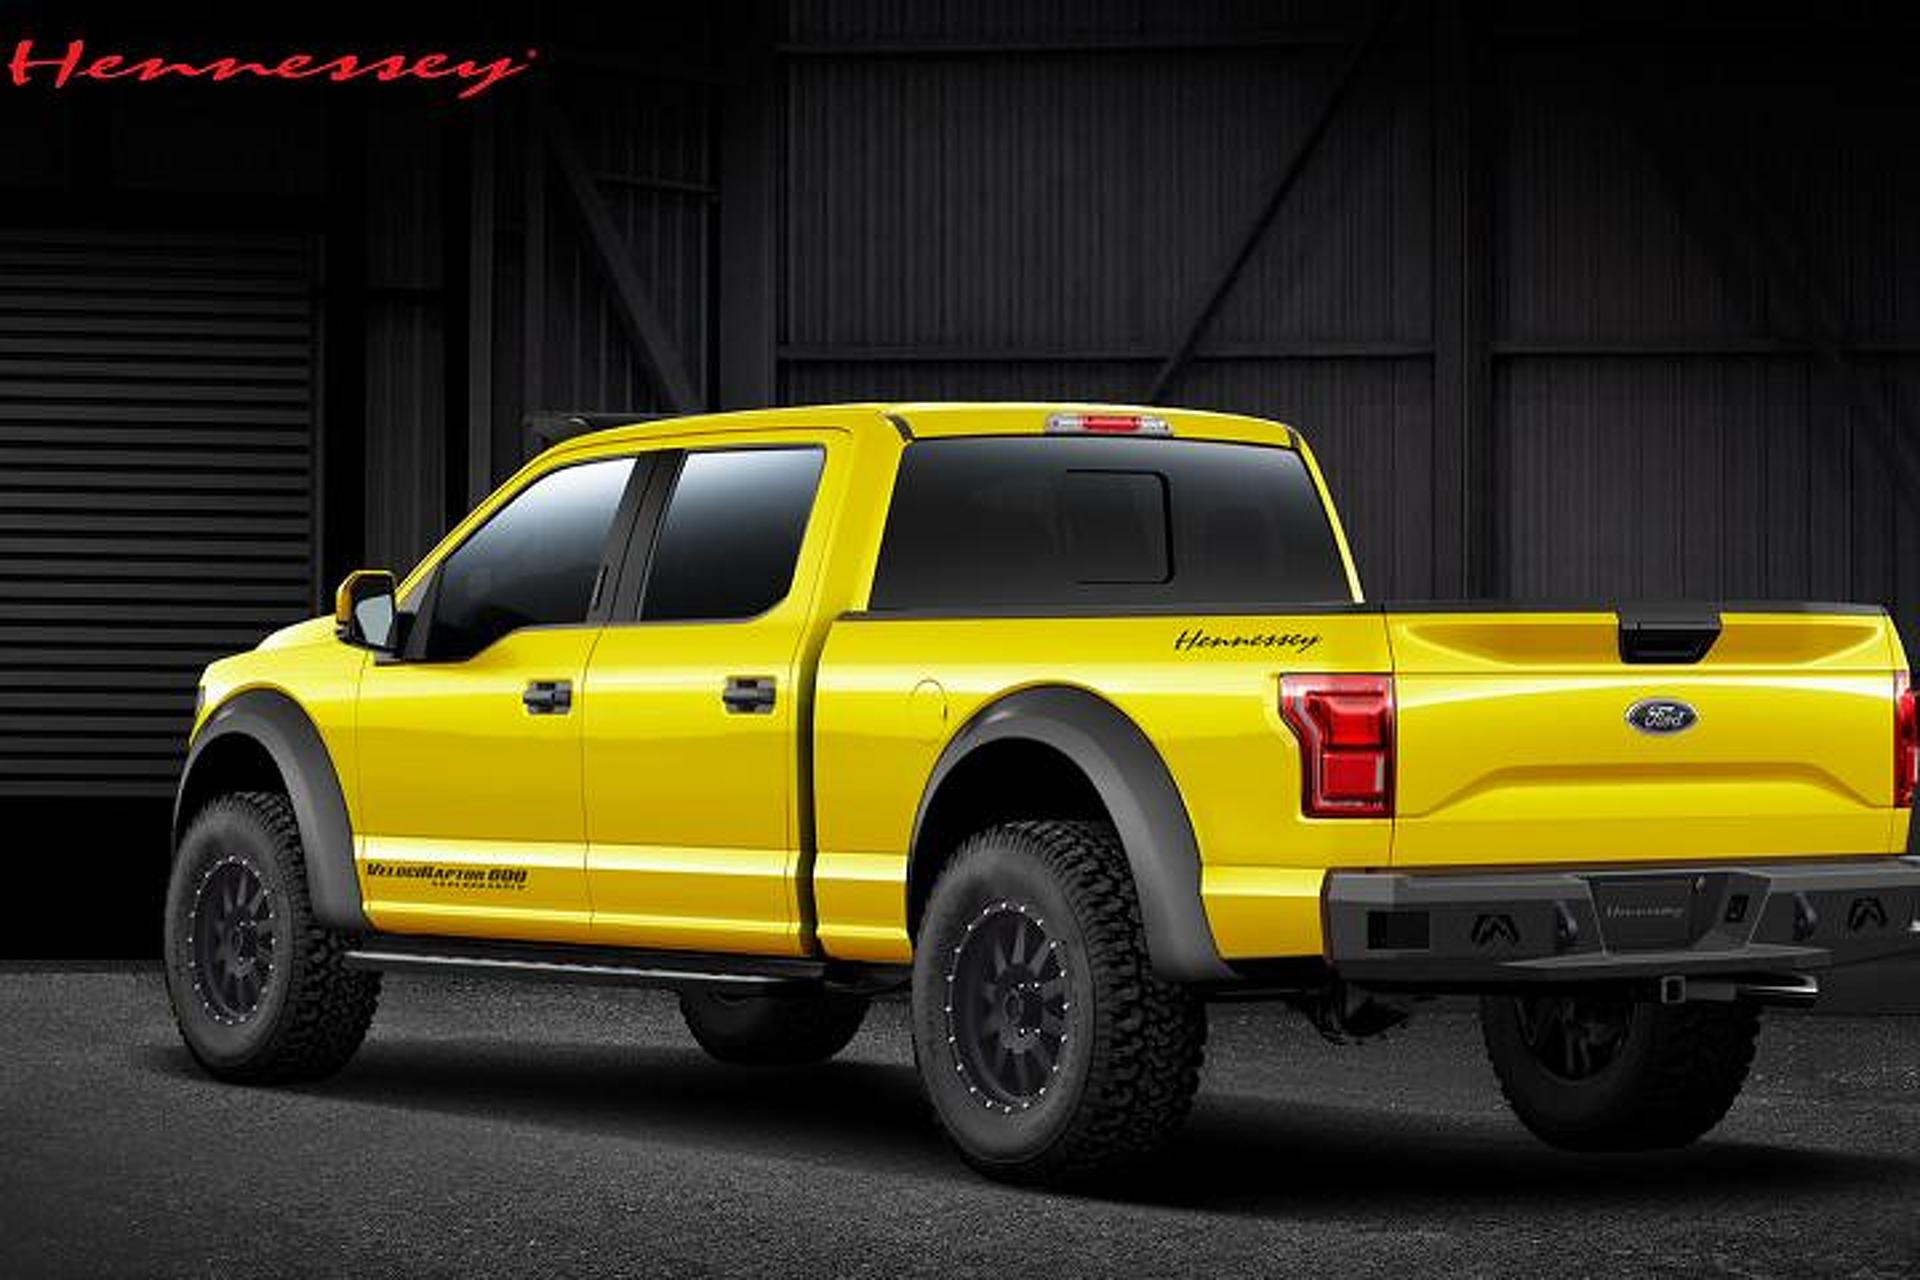 Hennessey Ford F-150 VelociRaptor is Ready to Strike